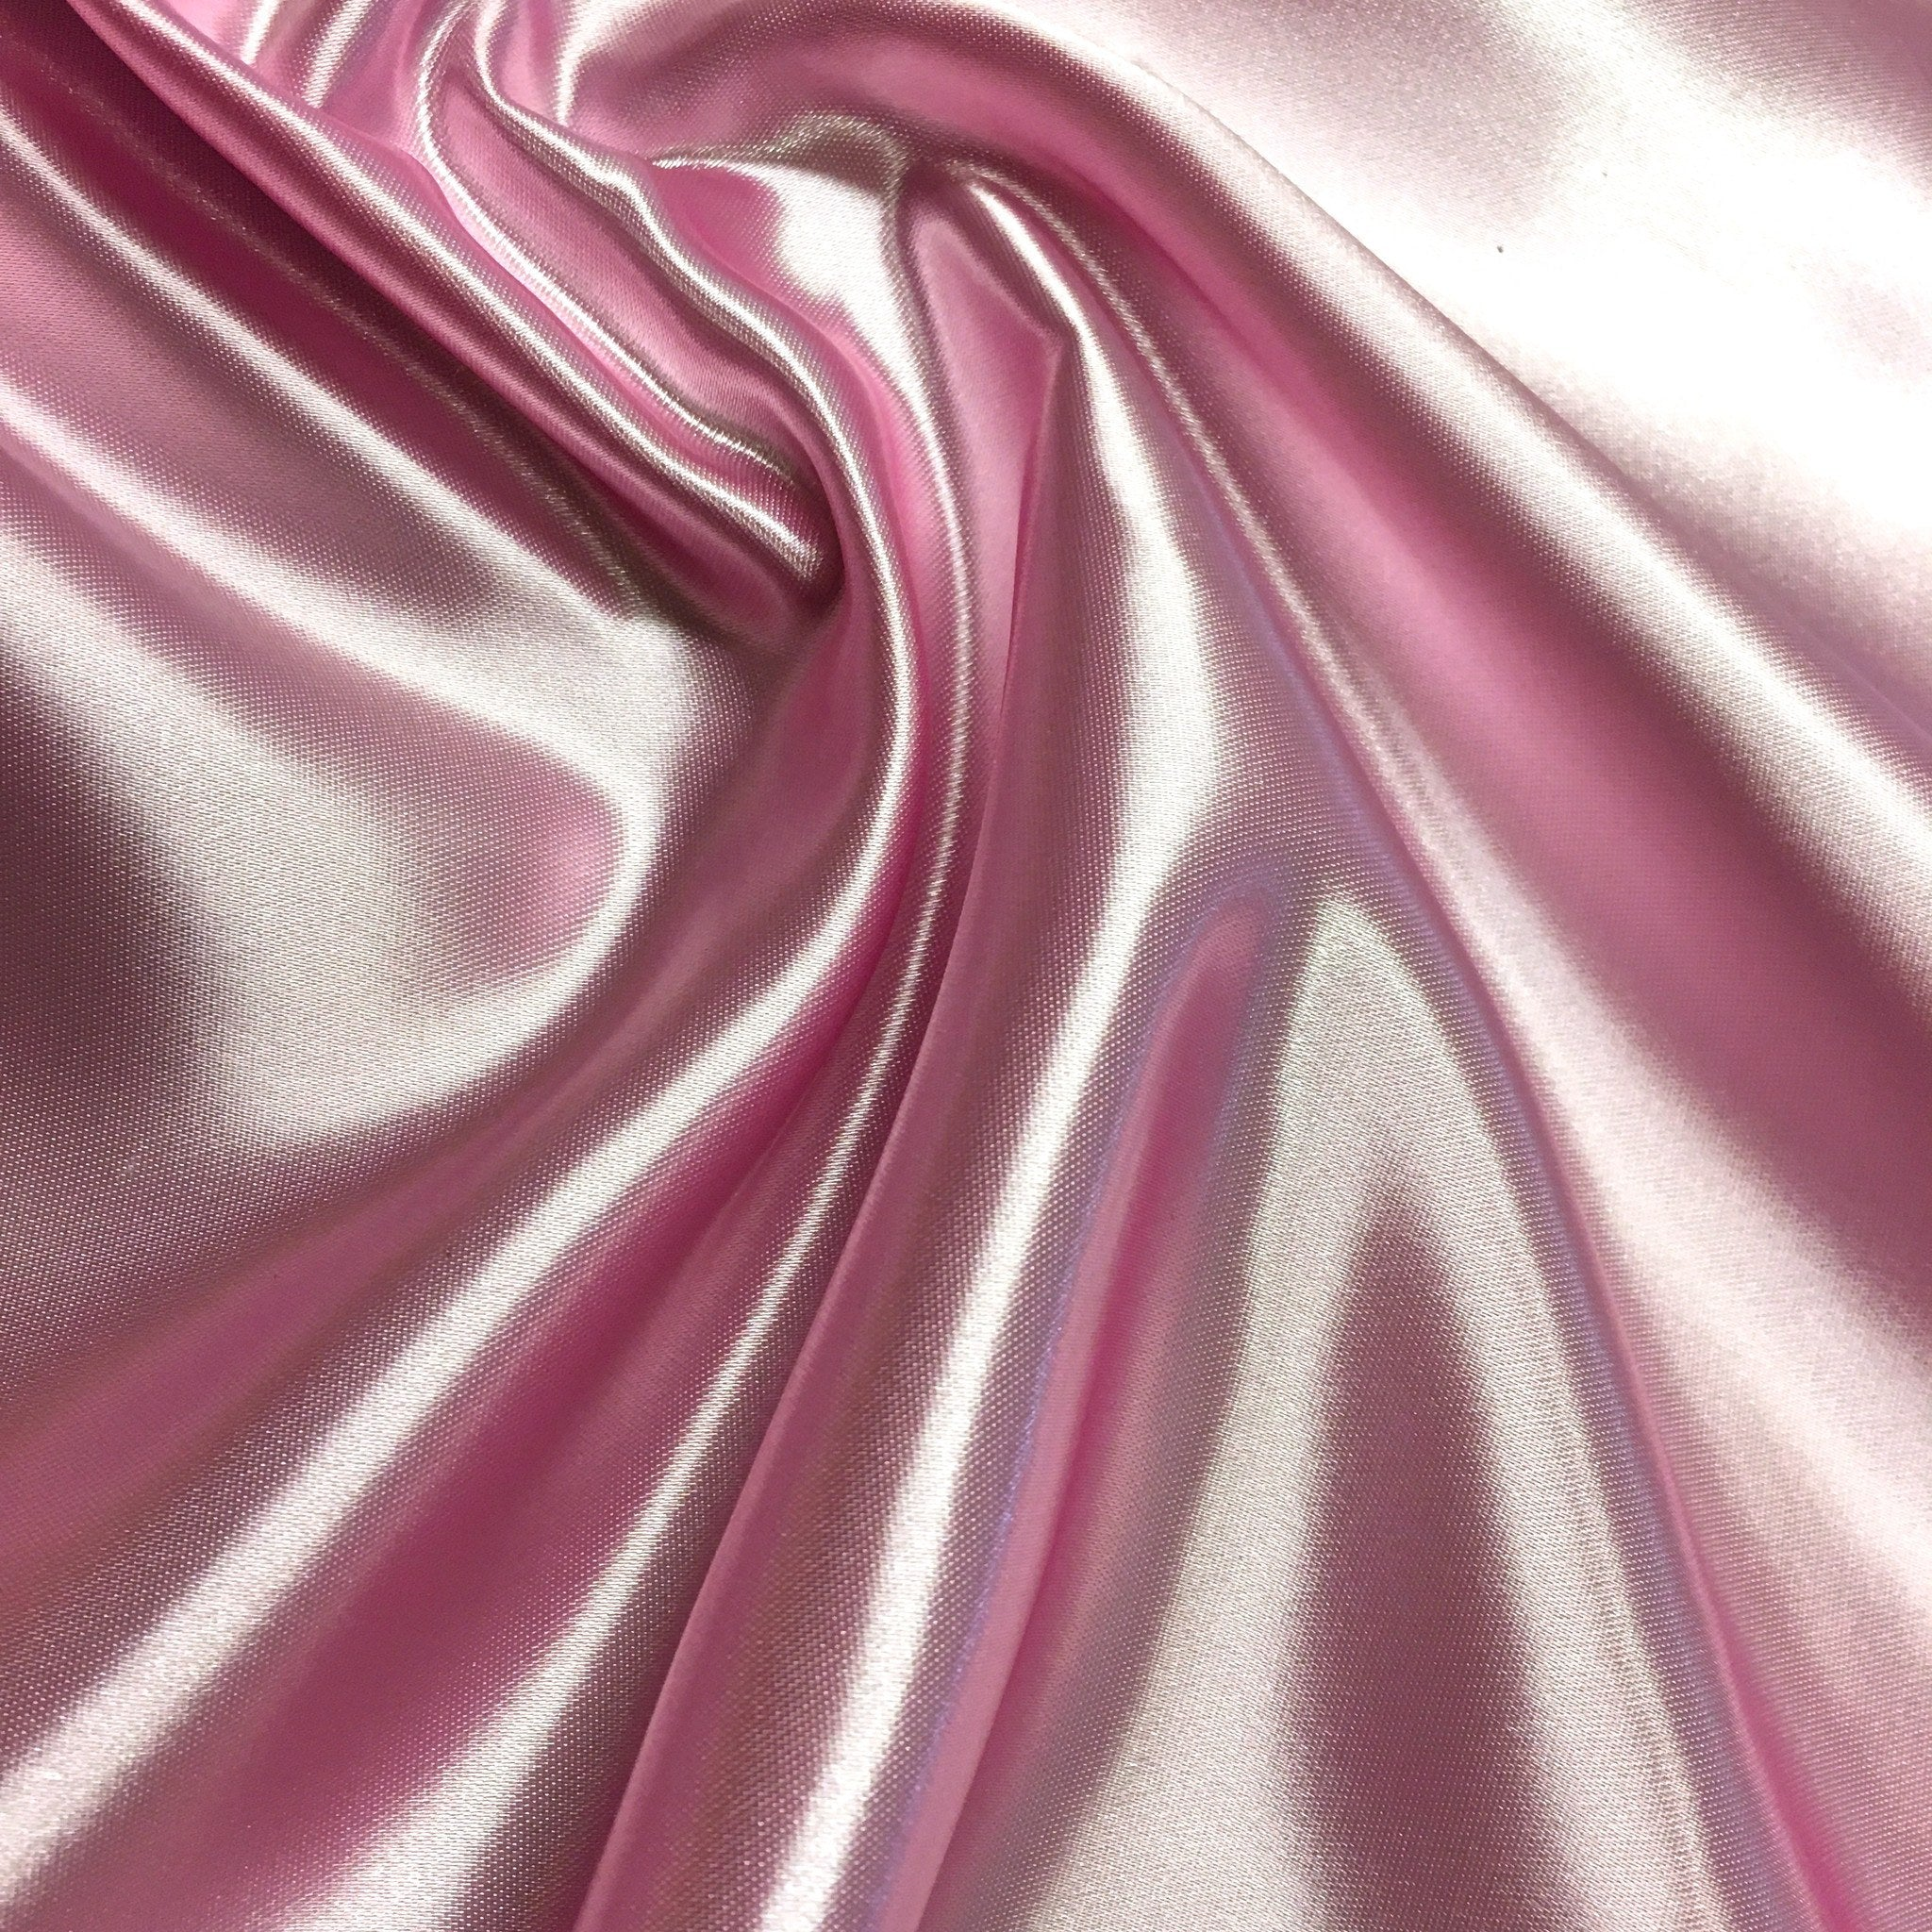 Bridal Satin Fabric 60 Quot Wide 100 Polyester 2 99 Yard